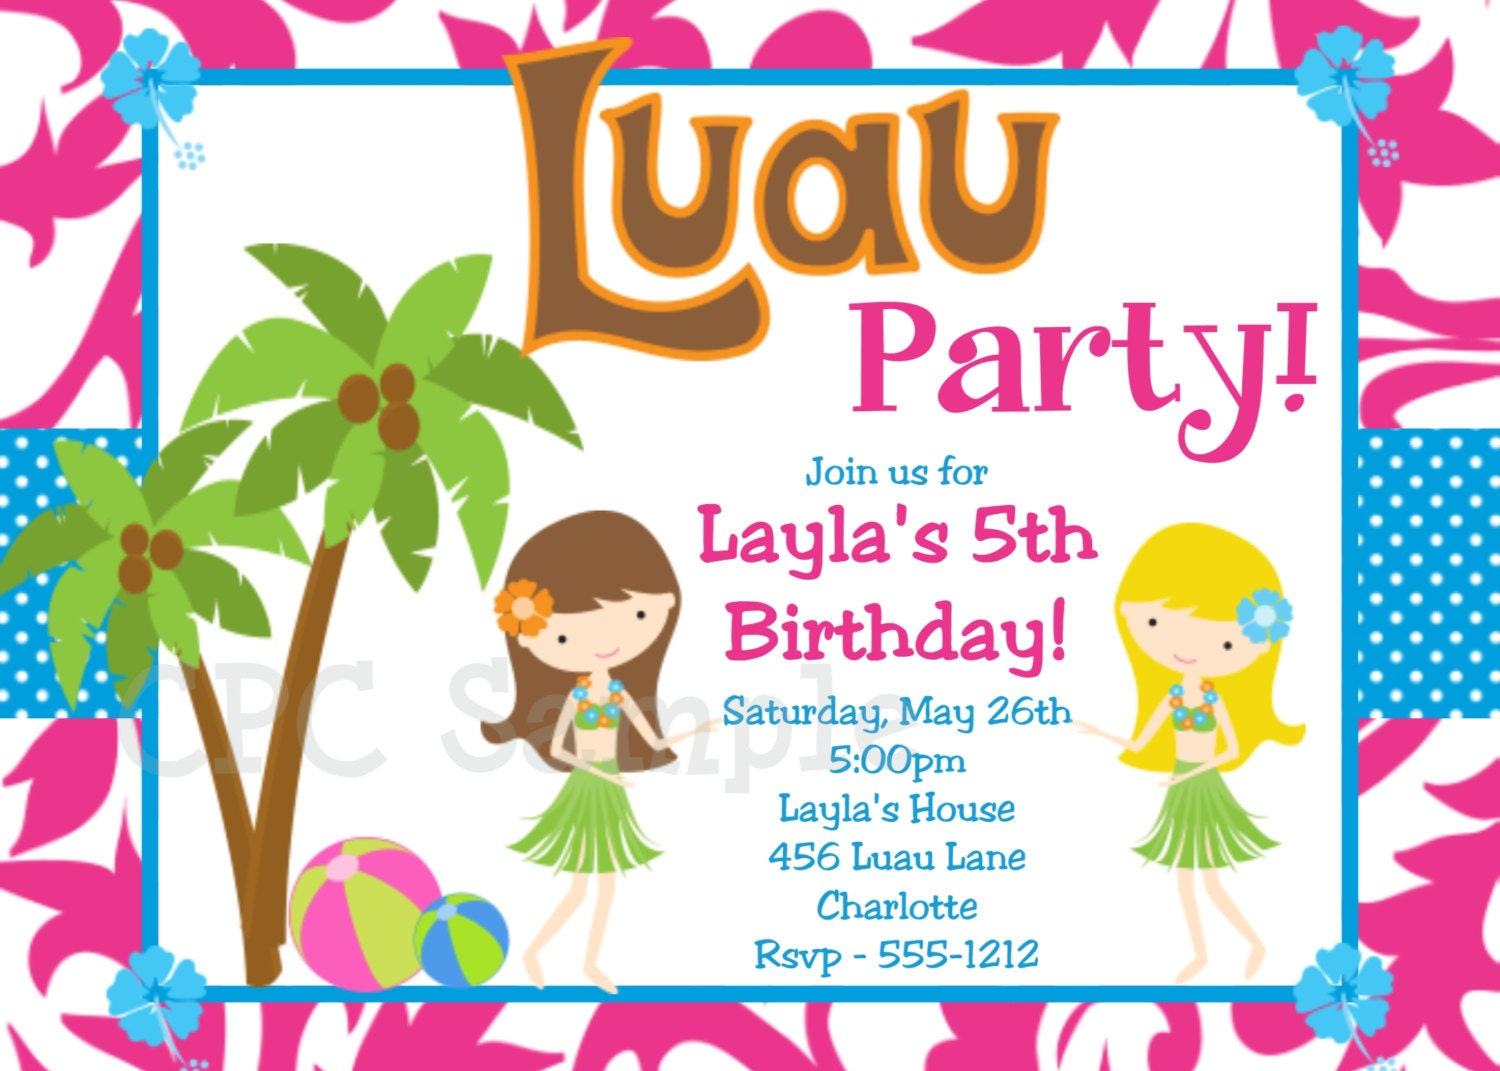 luau birthday invitation luau party invitations printable or, invitation samples